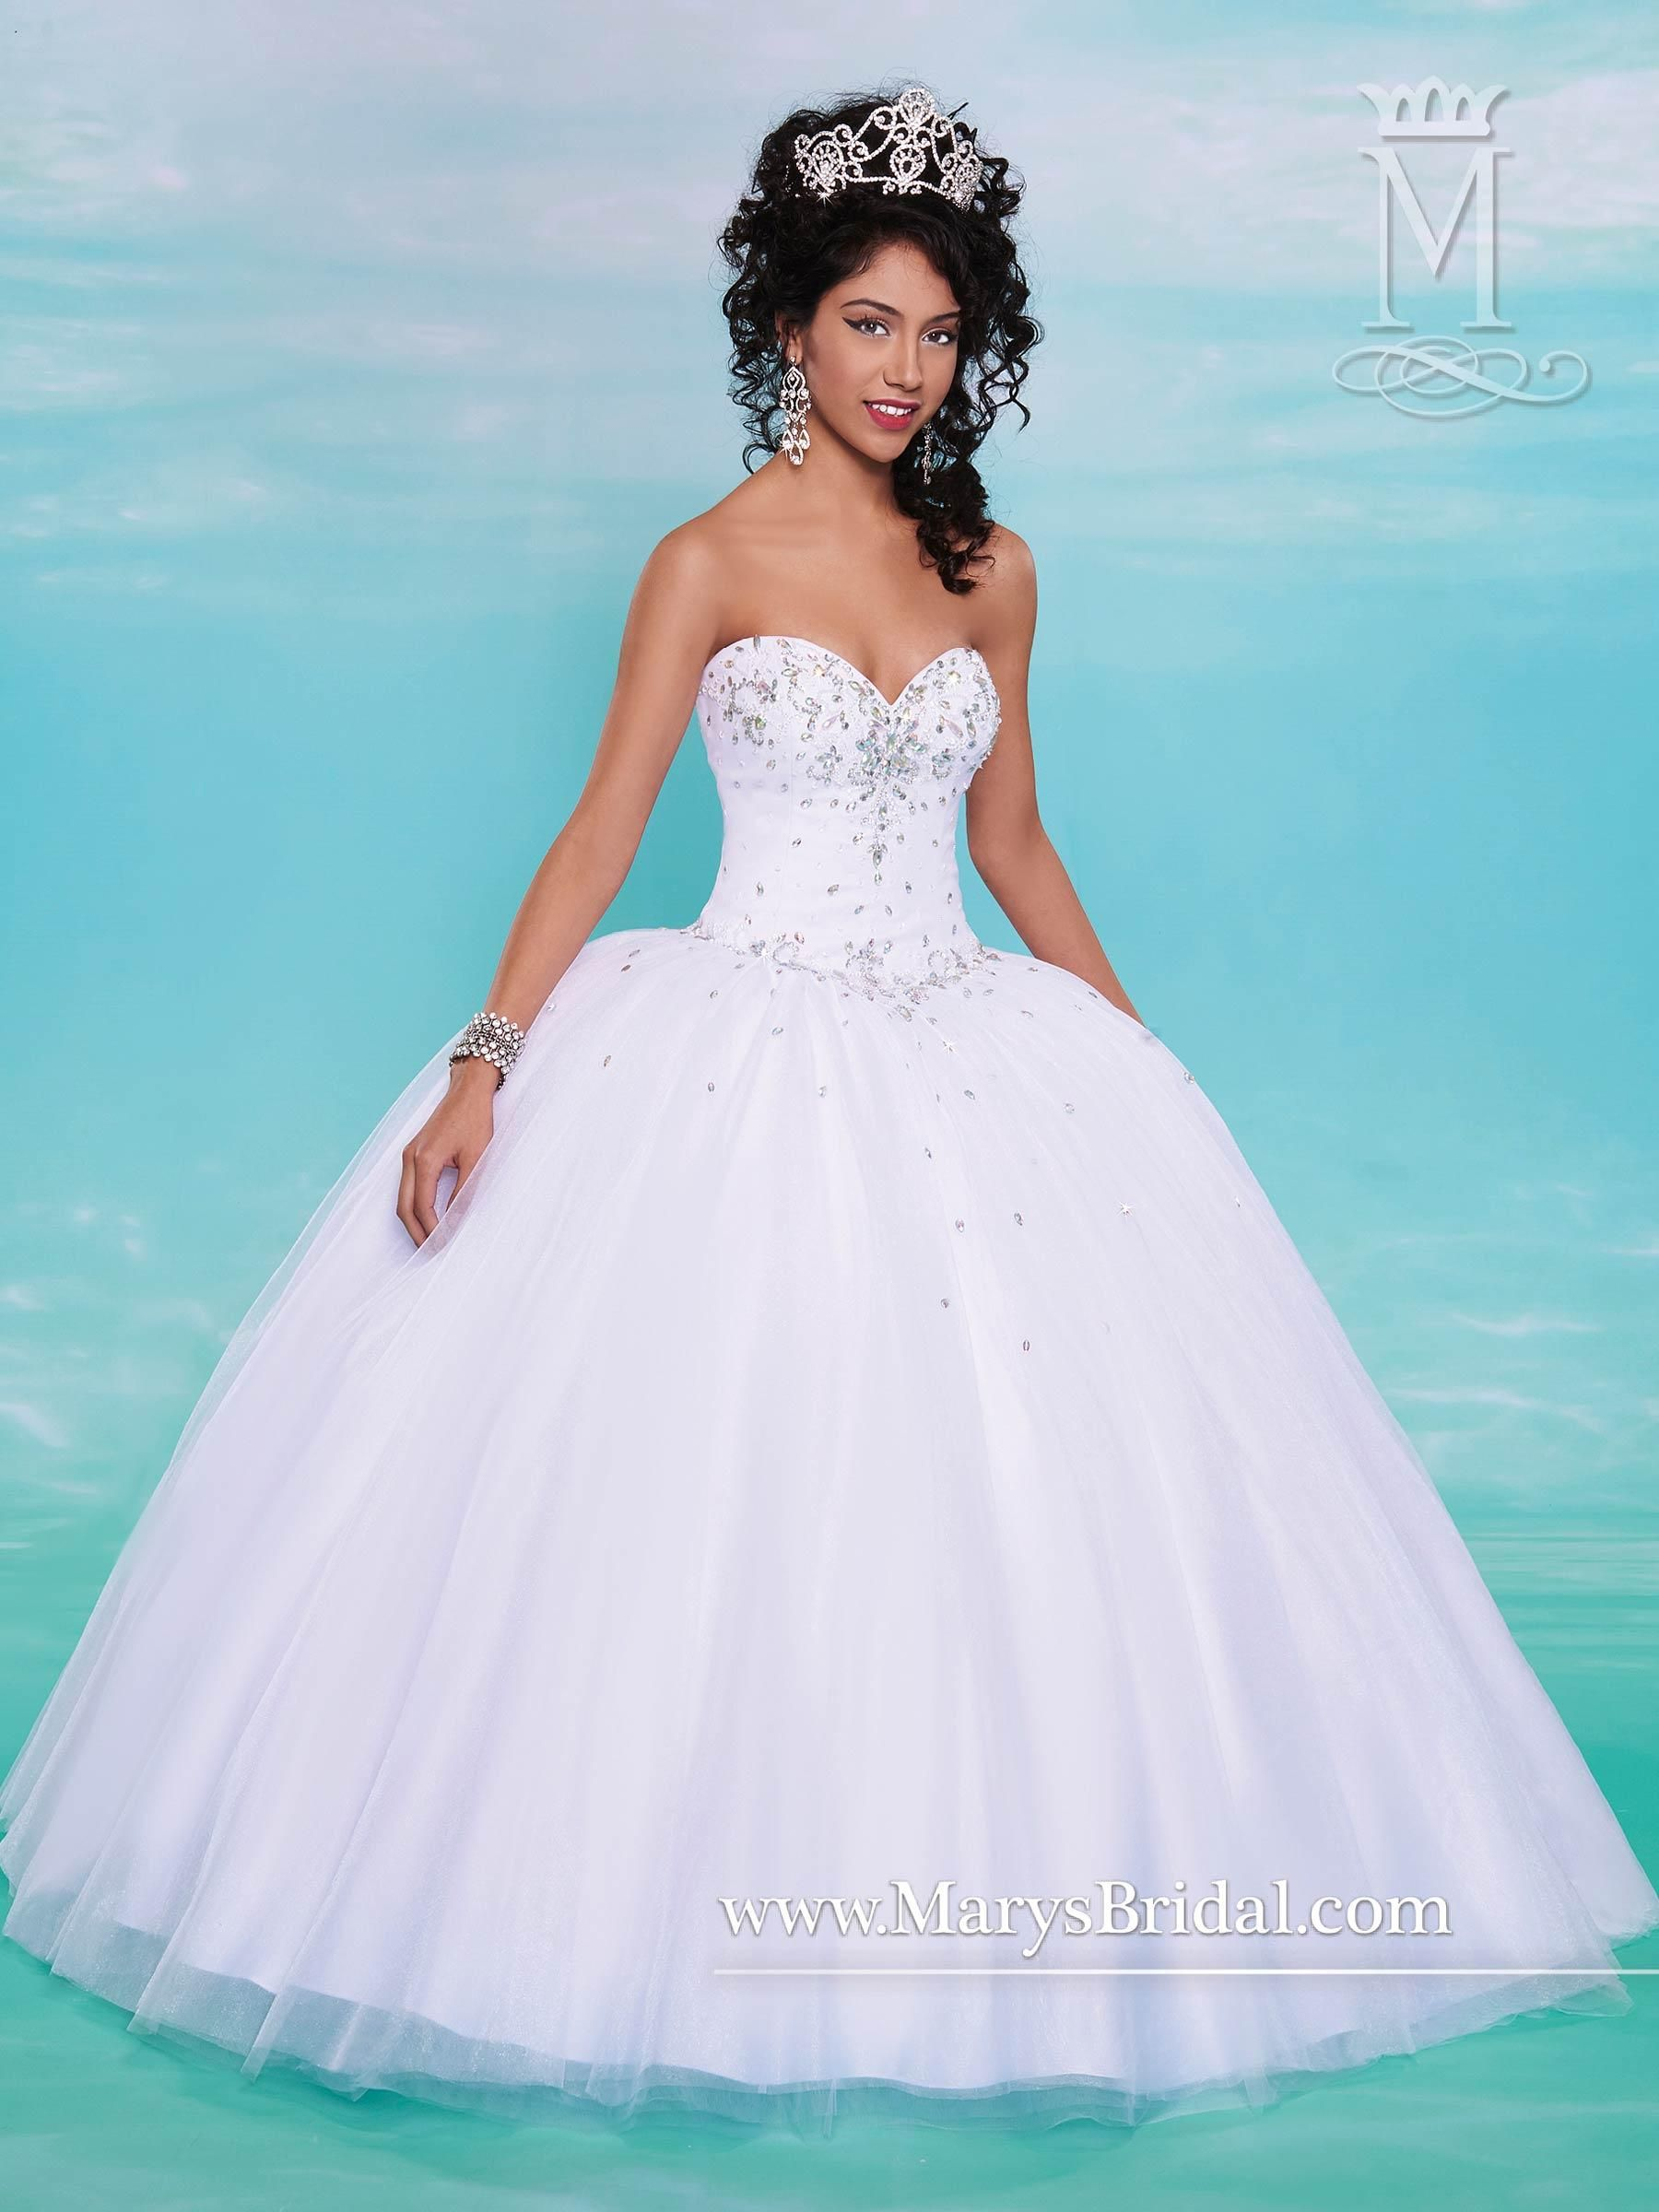 Teal and white wedding dresses  Maryus White Quinceanera Dresses  Fall Sweetheart Neck